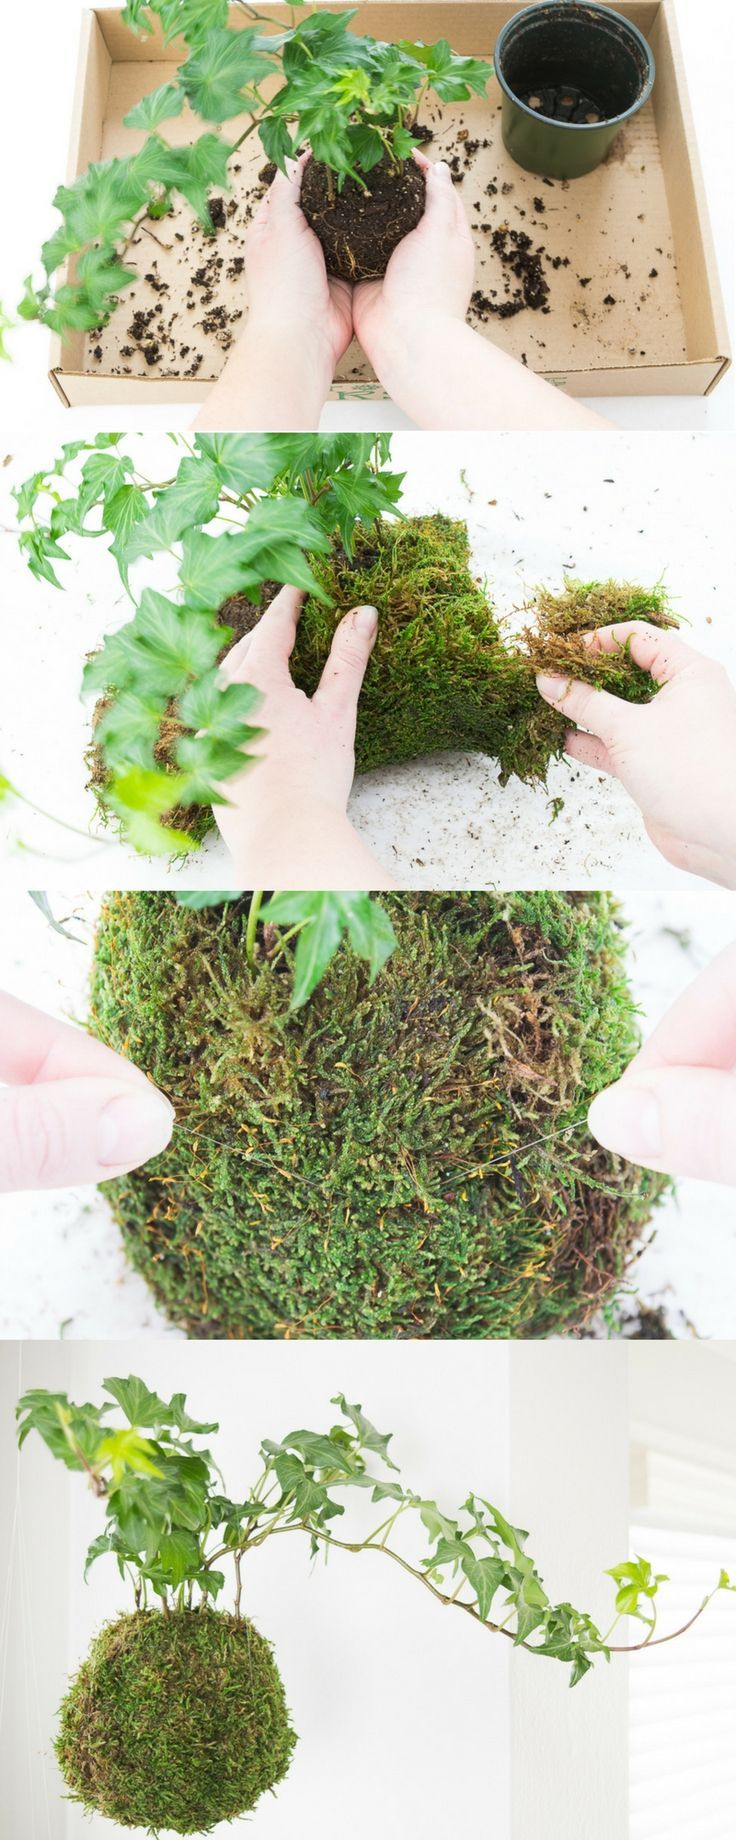 This tutorial shows you the easiest way to make your own kokedama! These moss balls are perfect for adding a little greenery to your window without a bunch of pots cluttering up the windowsill.